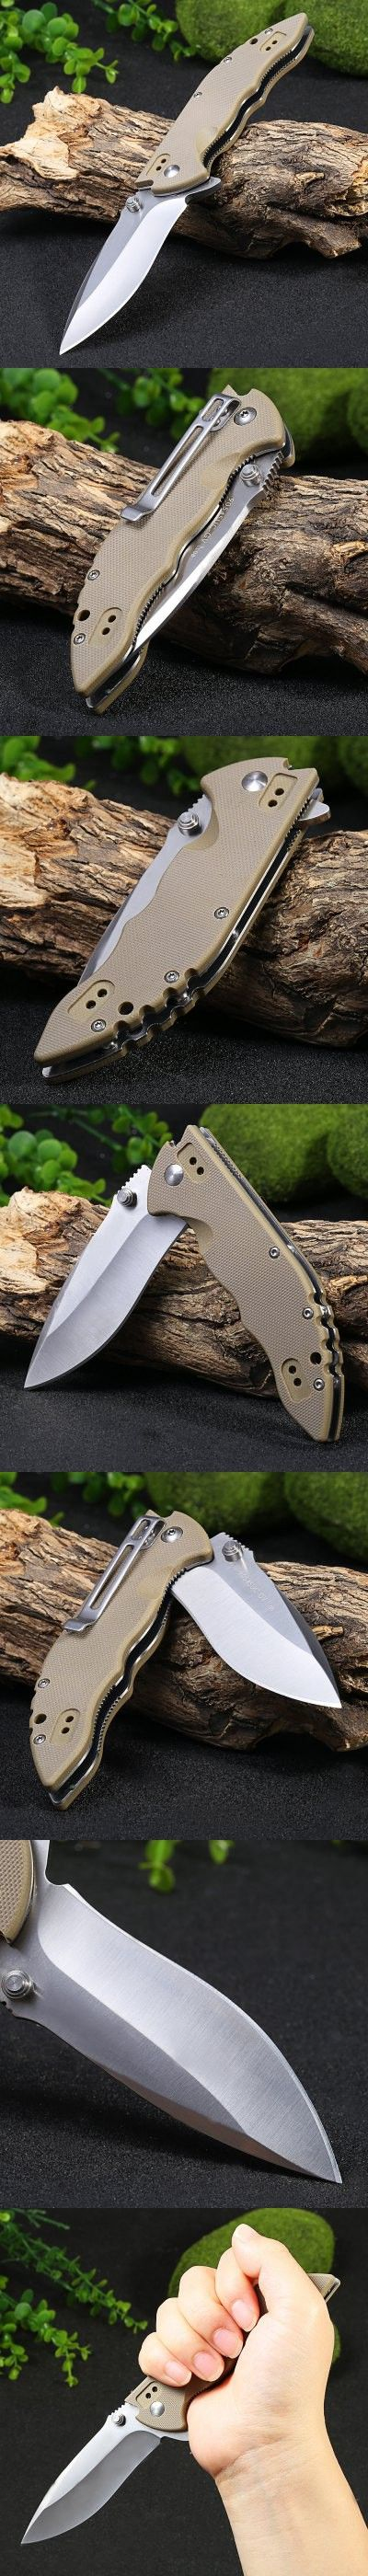 Pocket Knives and Folding Knives | Sanrenmu 9054 SUC-GV 58HRC Folding Knife